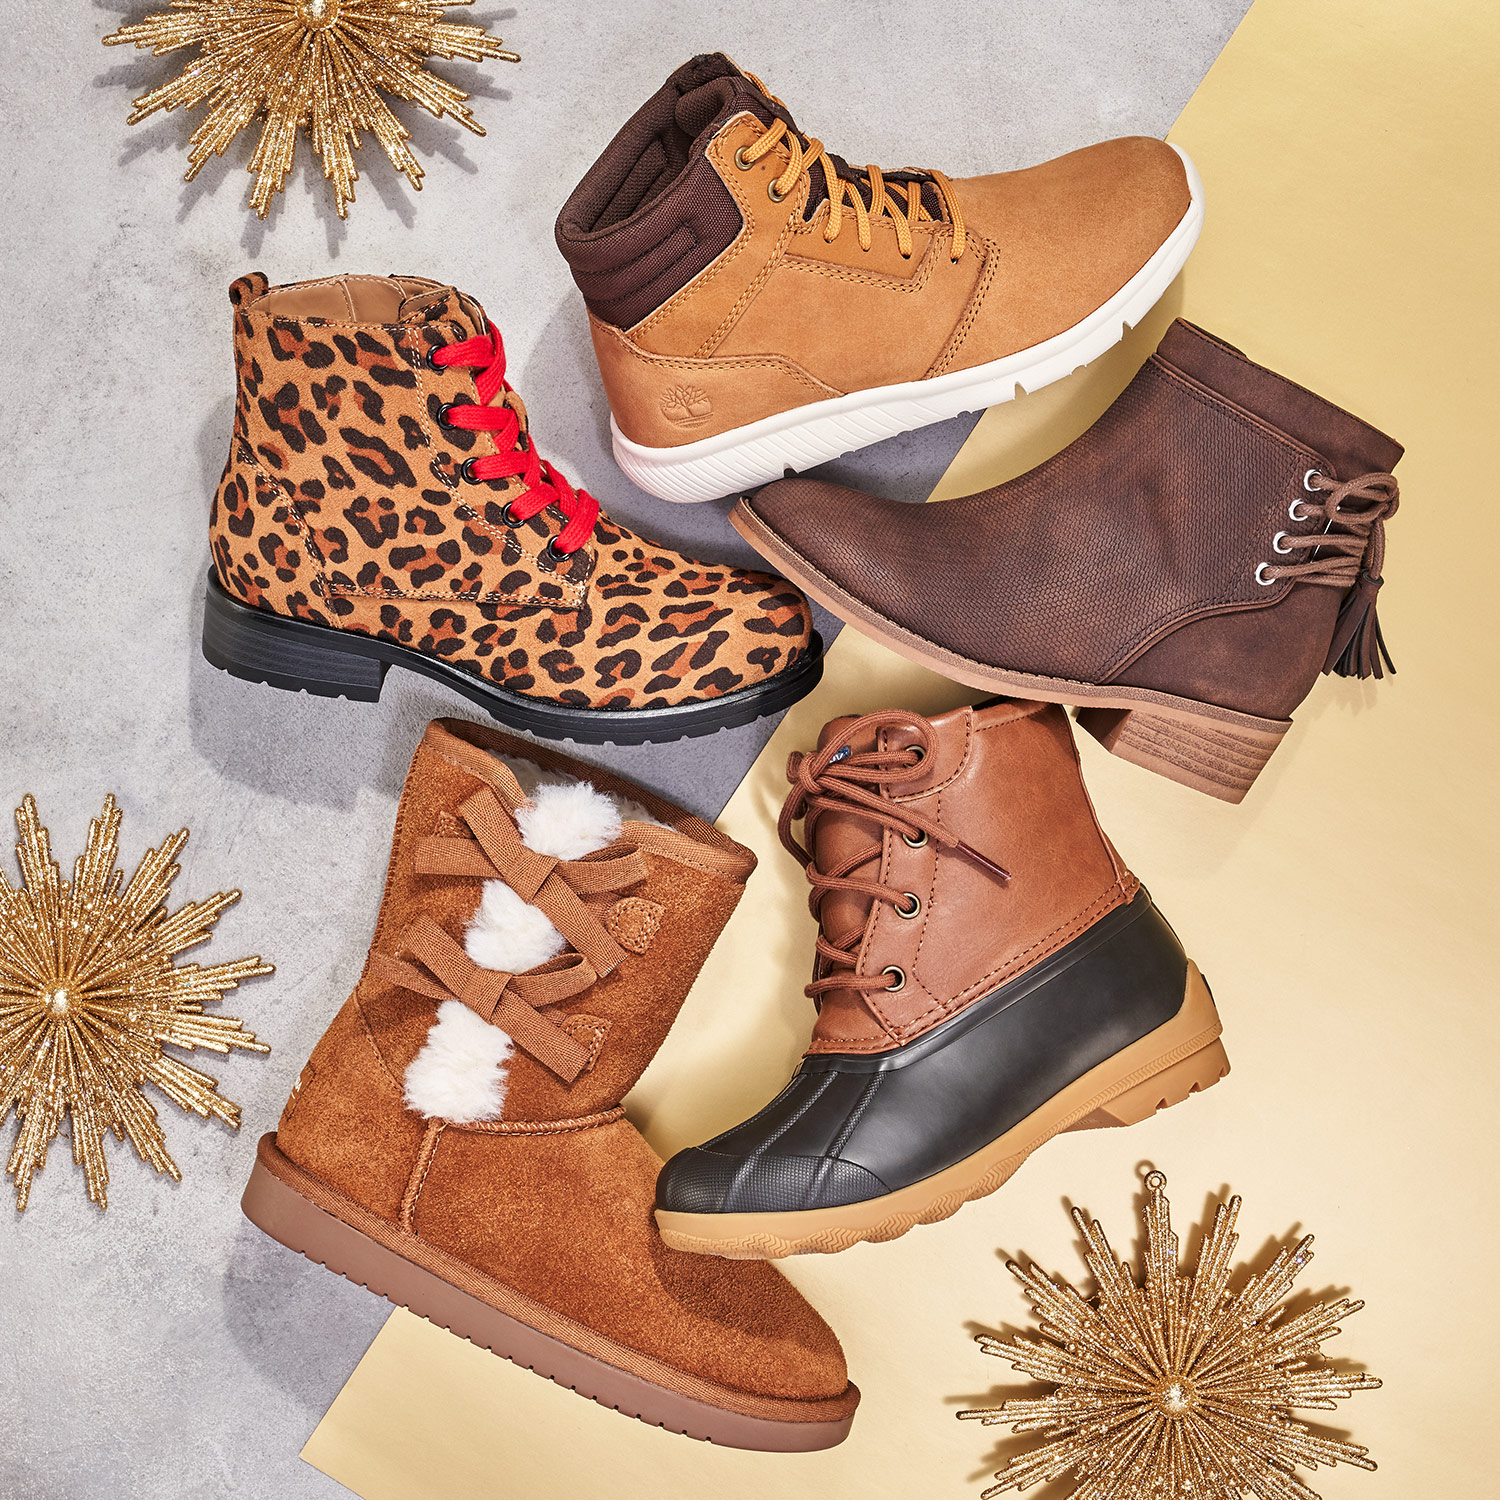 assorted kid's boots including timberland, sperry, and koolaburra by ugg boots